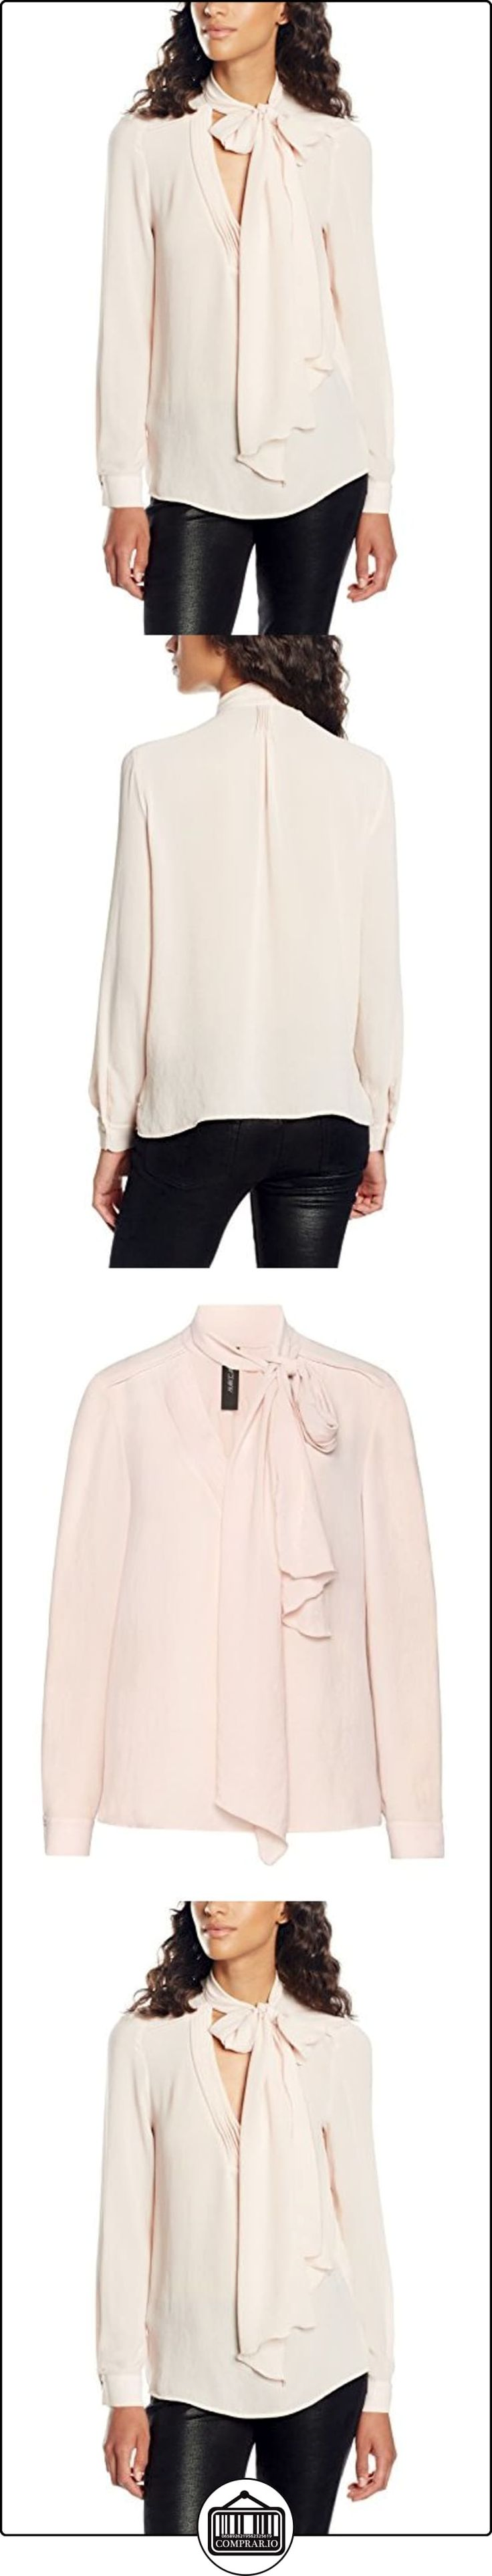 Marc Cain Collections Fc 51.41 W30, Blusa para Mujer, Beige, 46  ✿ Blusas y camisas ✿